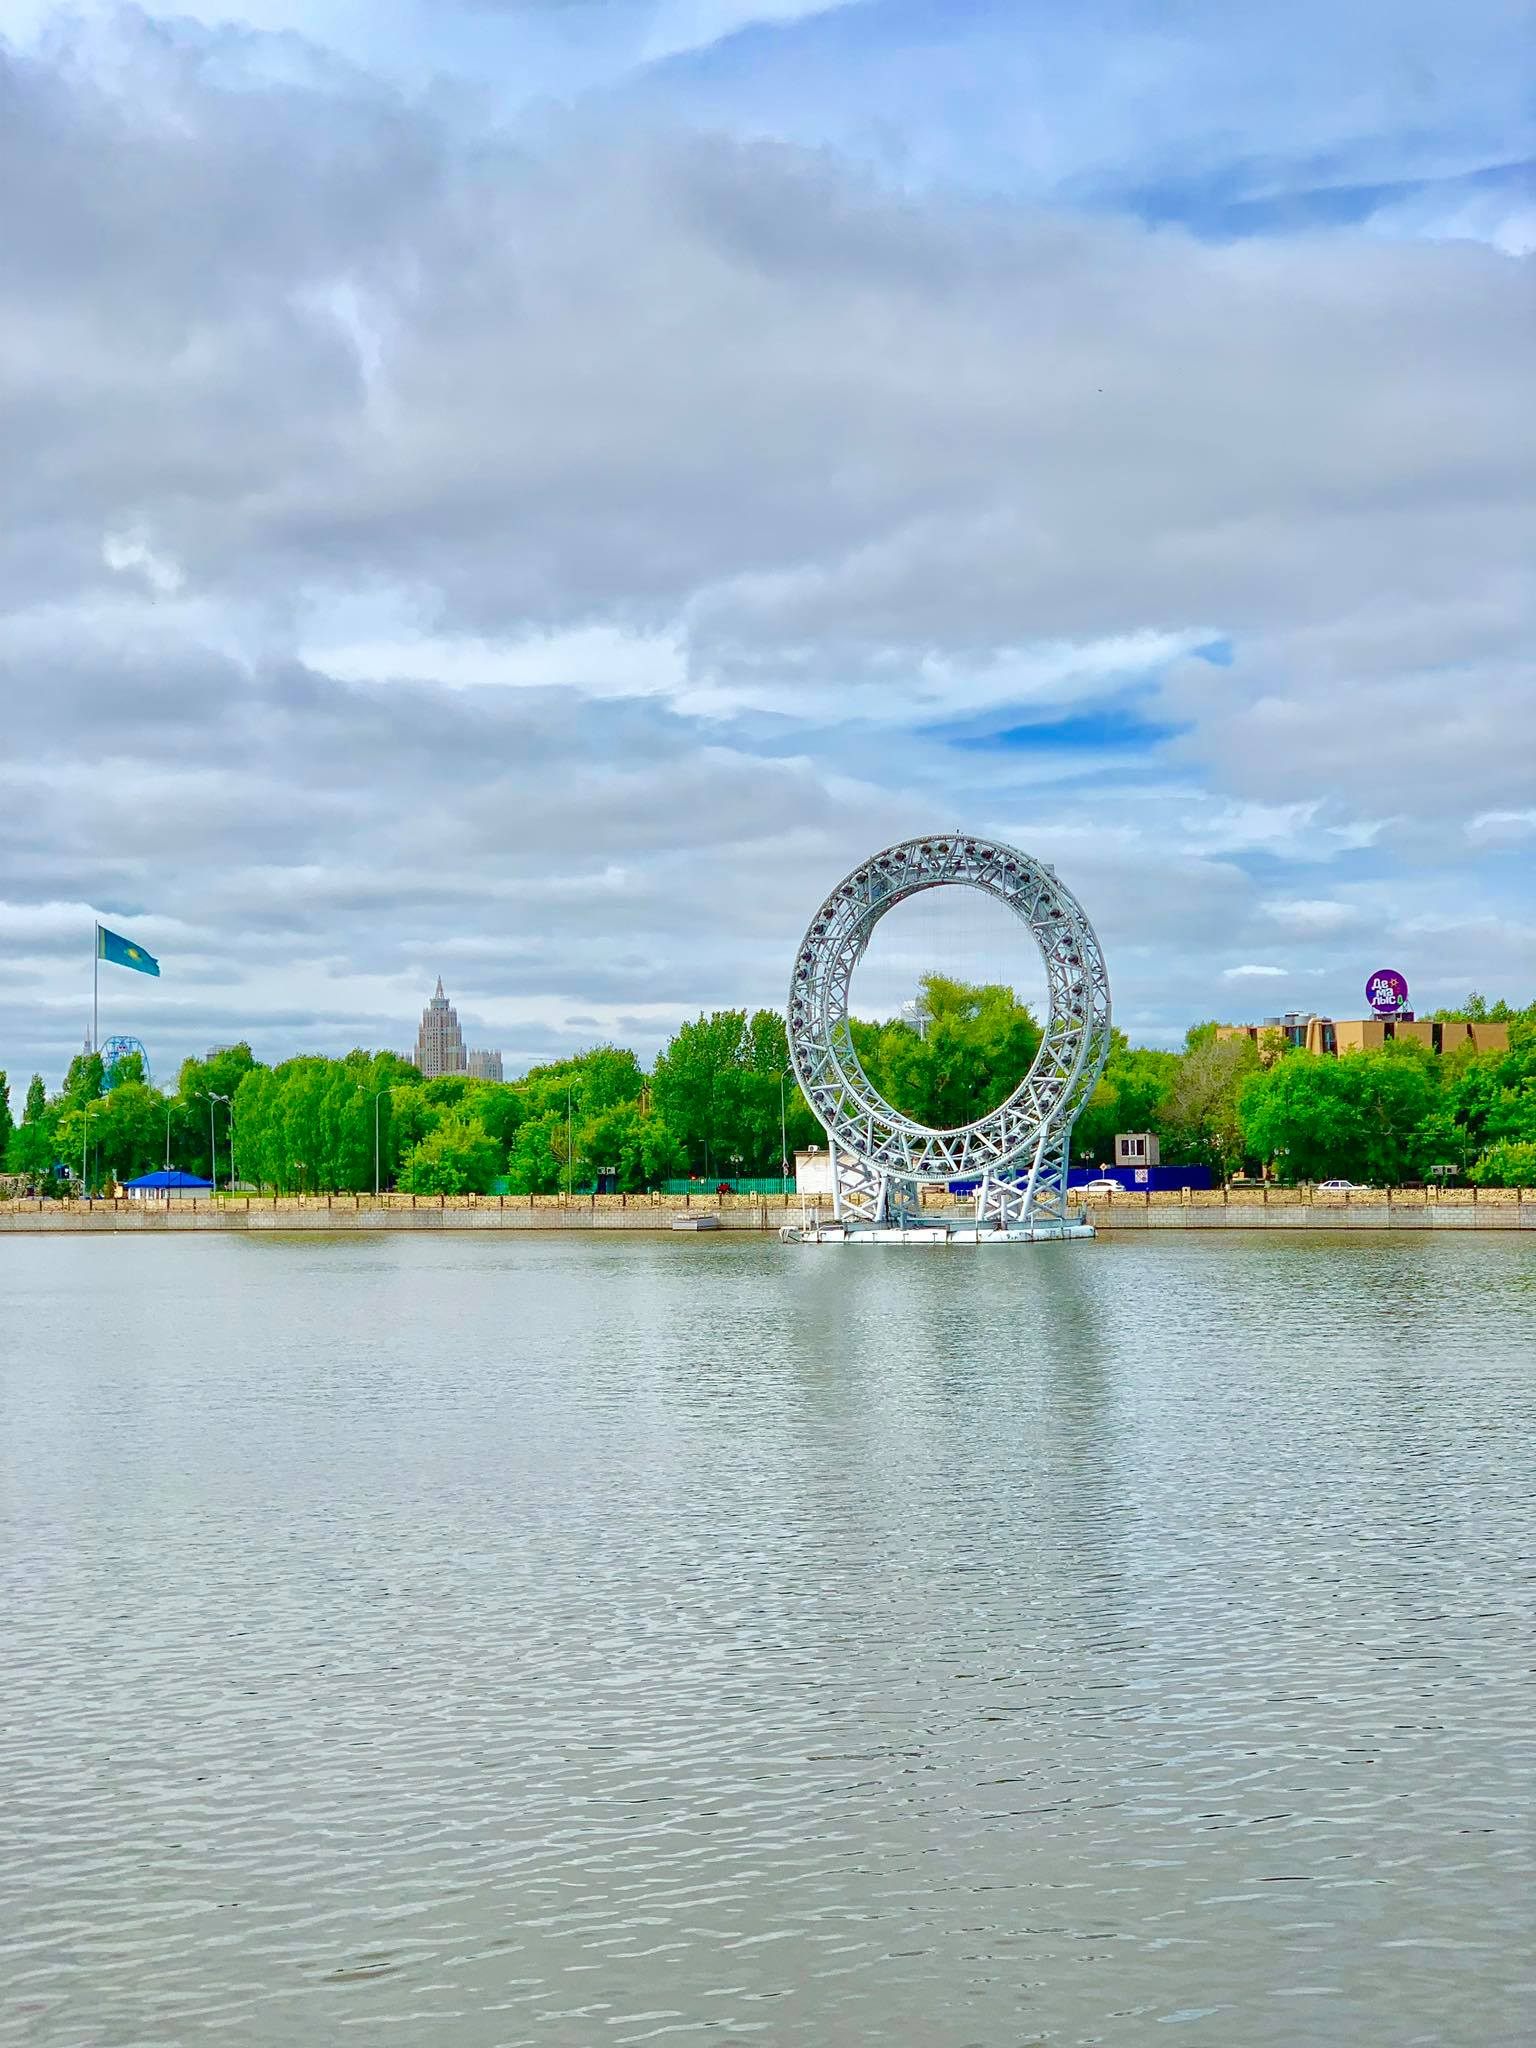 Kach Solo Travels in 2019 Nursultan  Astana - the City of the Future14.jpg